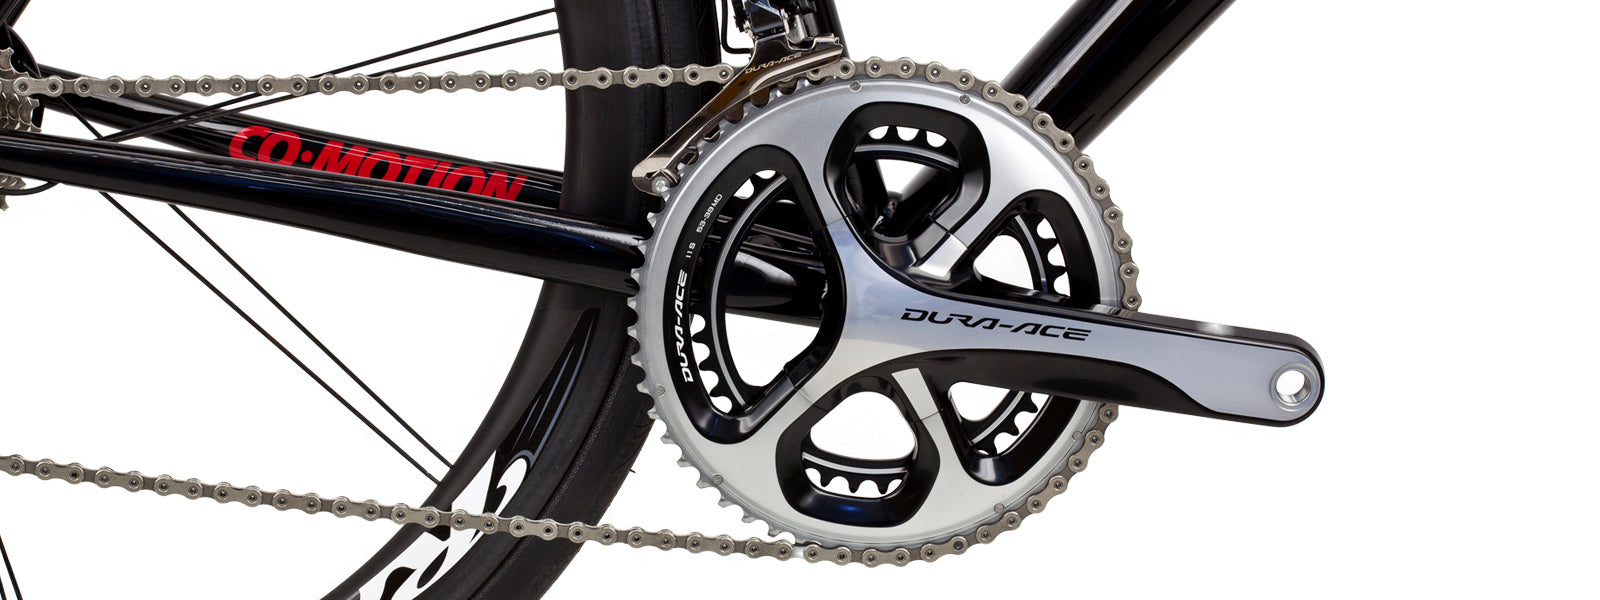 Ristretto - Co-Motion Cycles